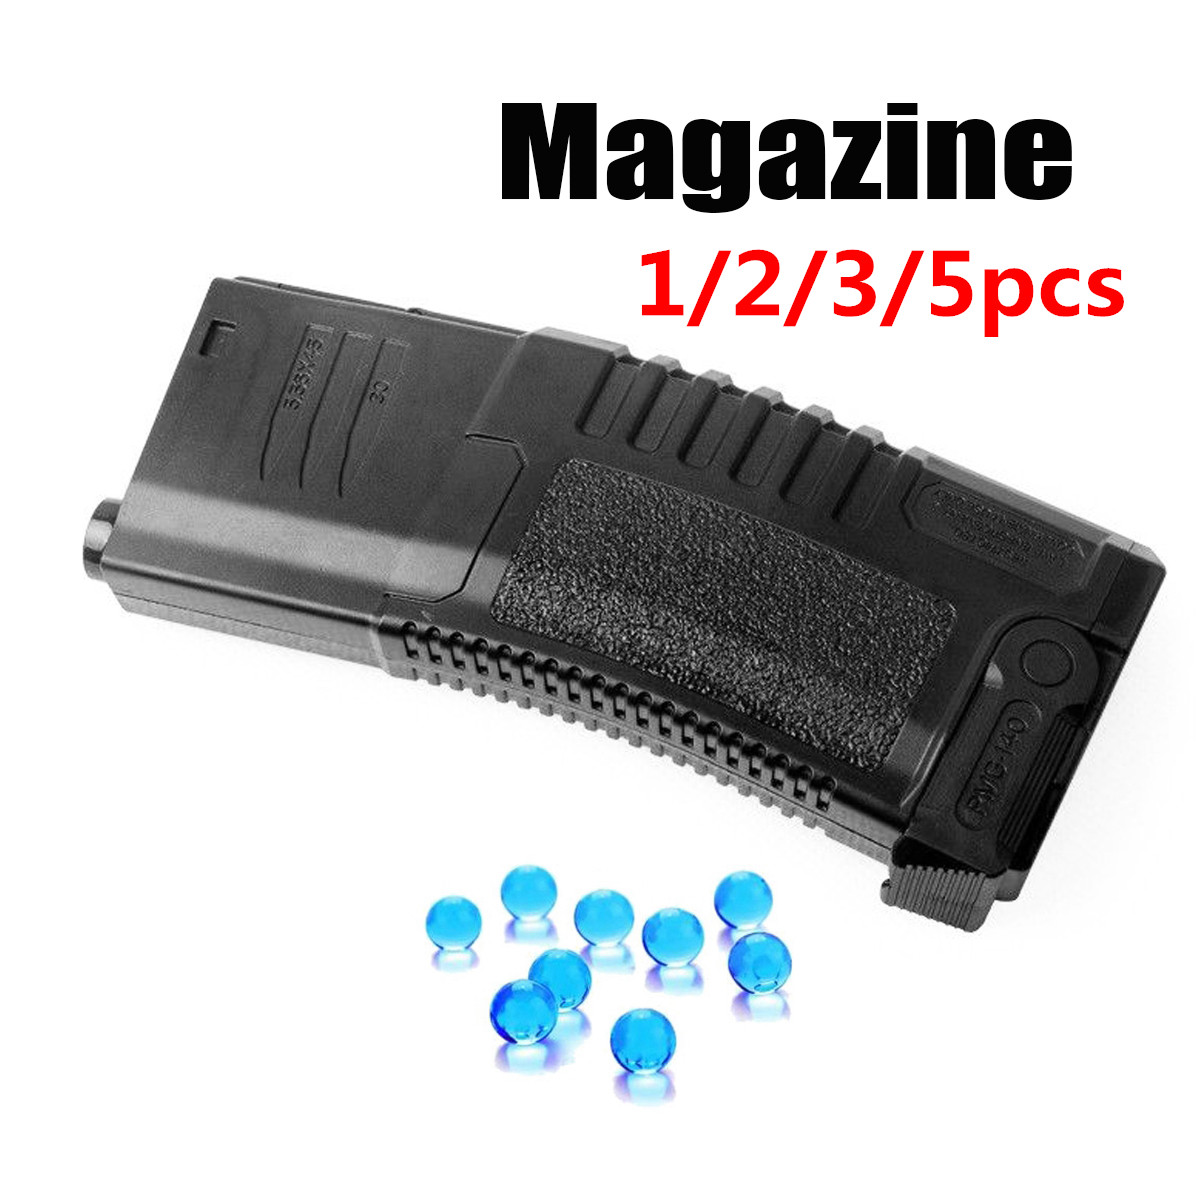 For JinMing 1/2/3Th M4A1+FJS 416 Gel Ball Blasters Water Toys Guns Parts